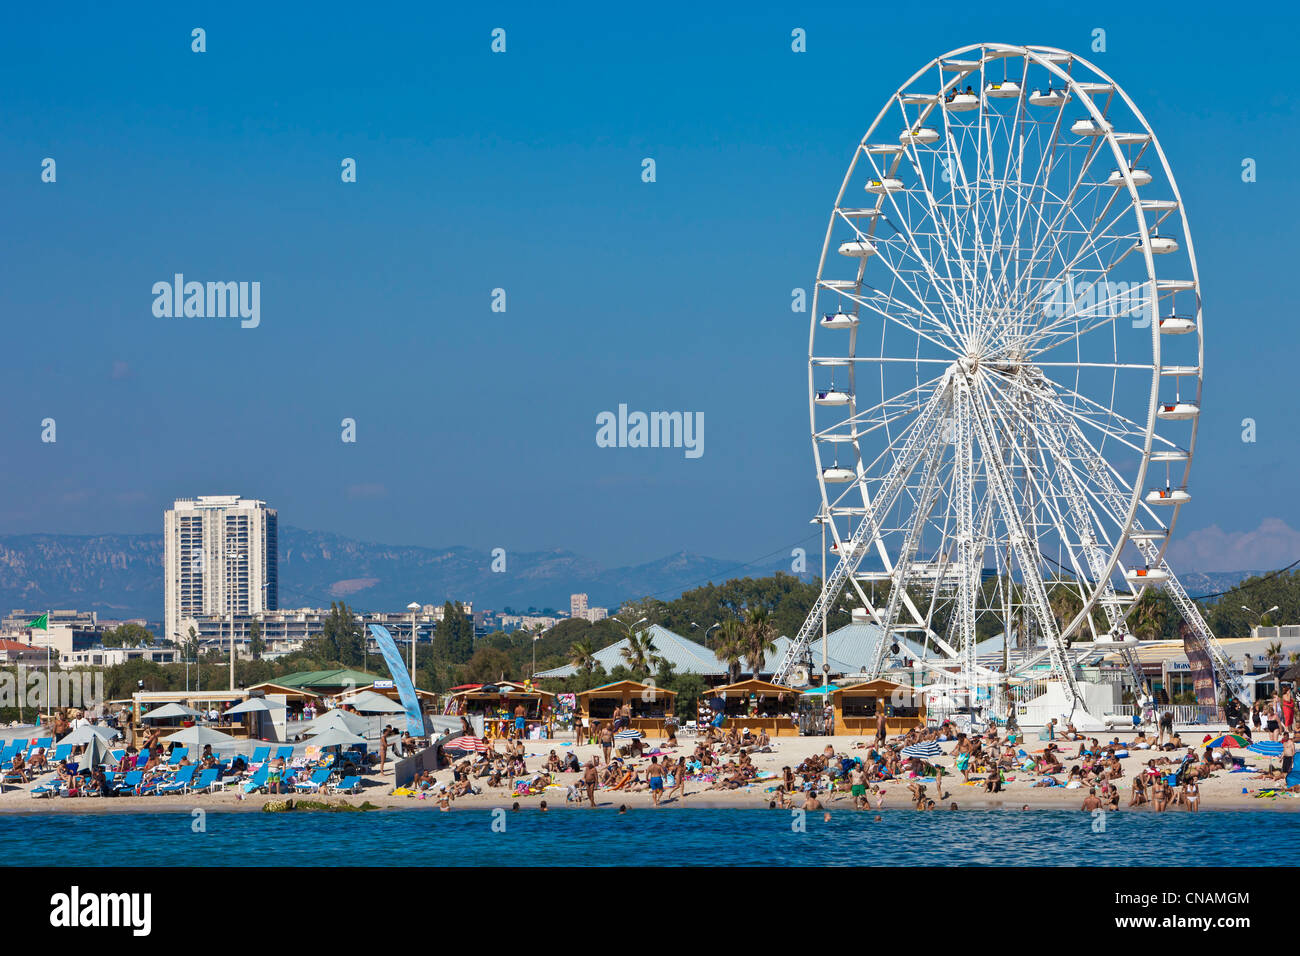 France, Bouches du Rhone, Marseille, the Prado beaches, Bonneveine beach - Stock Image